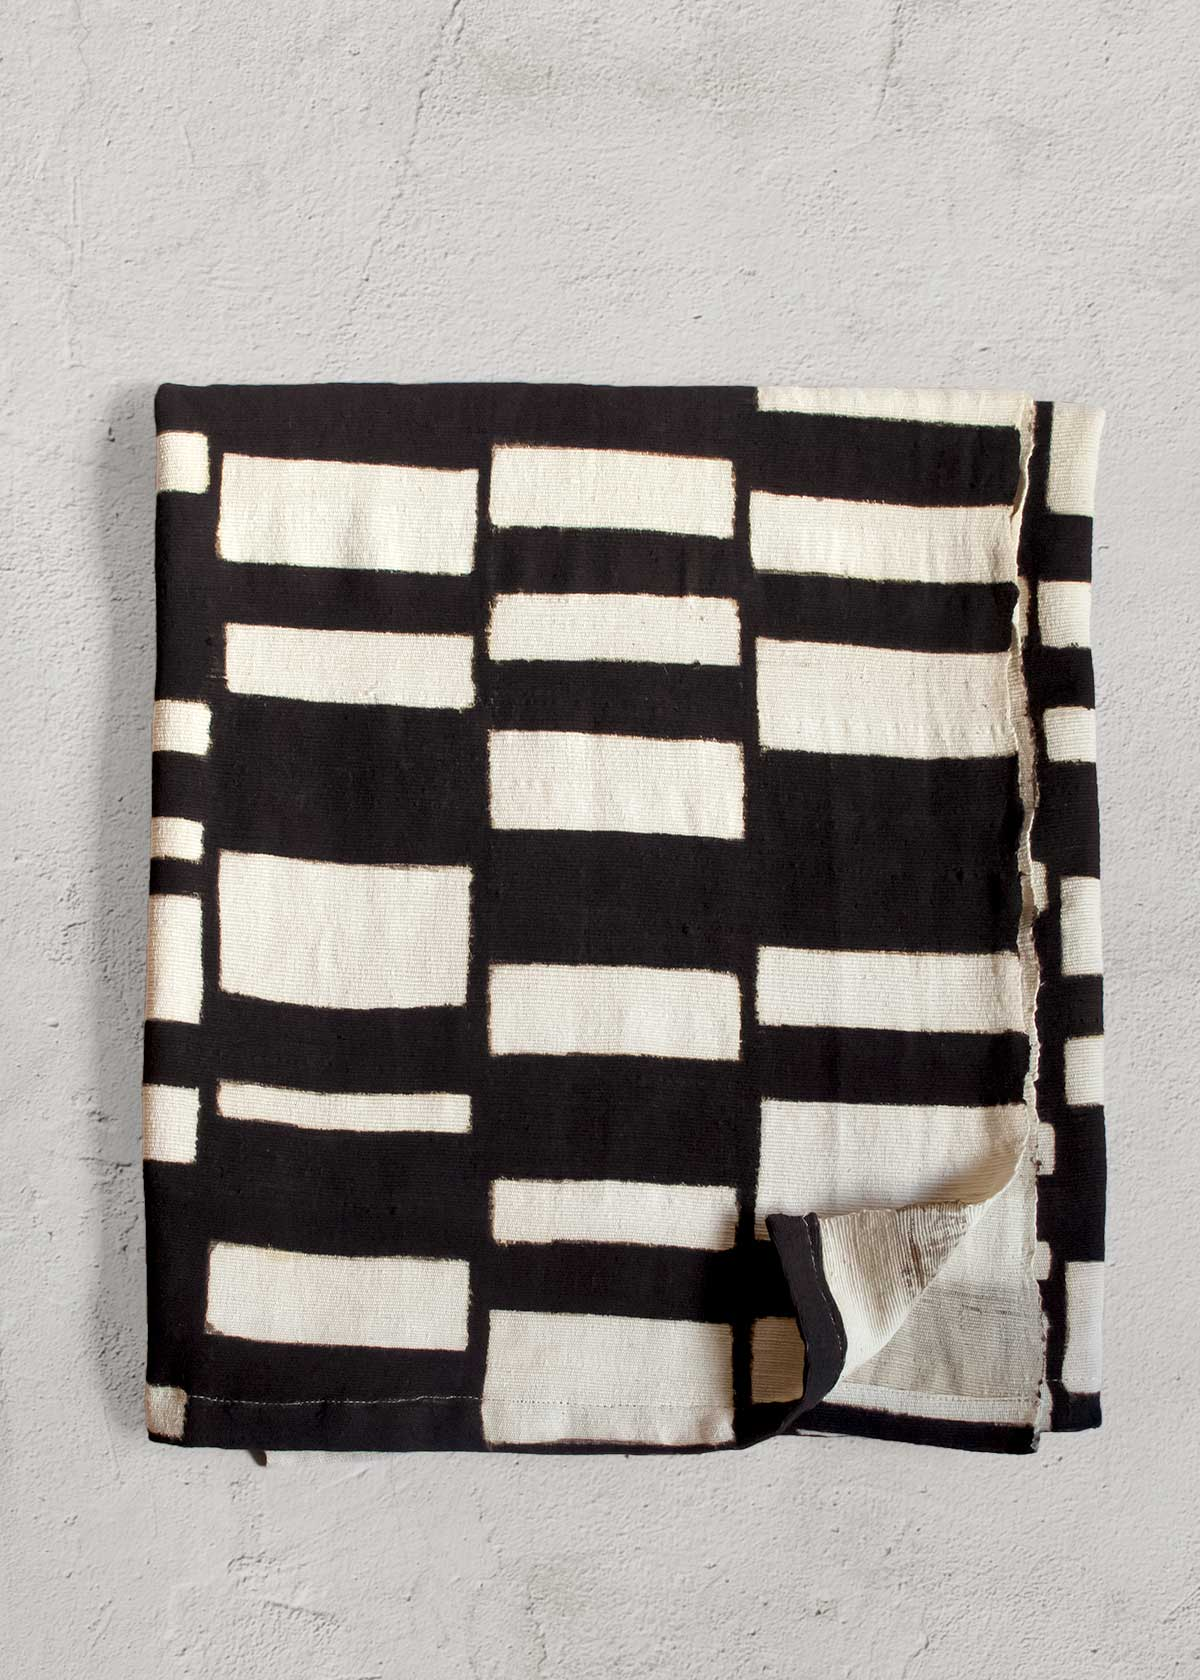 Ndomo Mud Cloth Throw, handmade in Mali